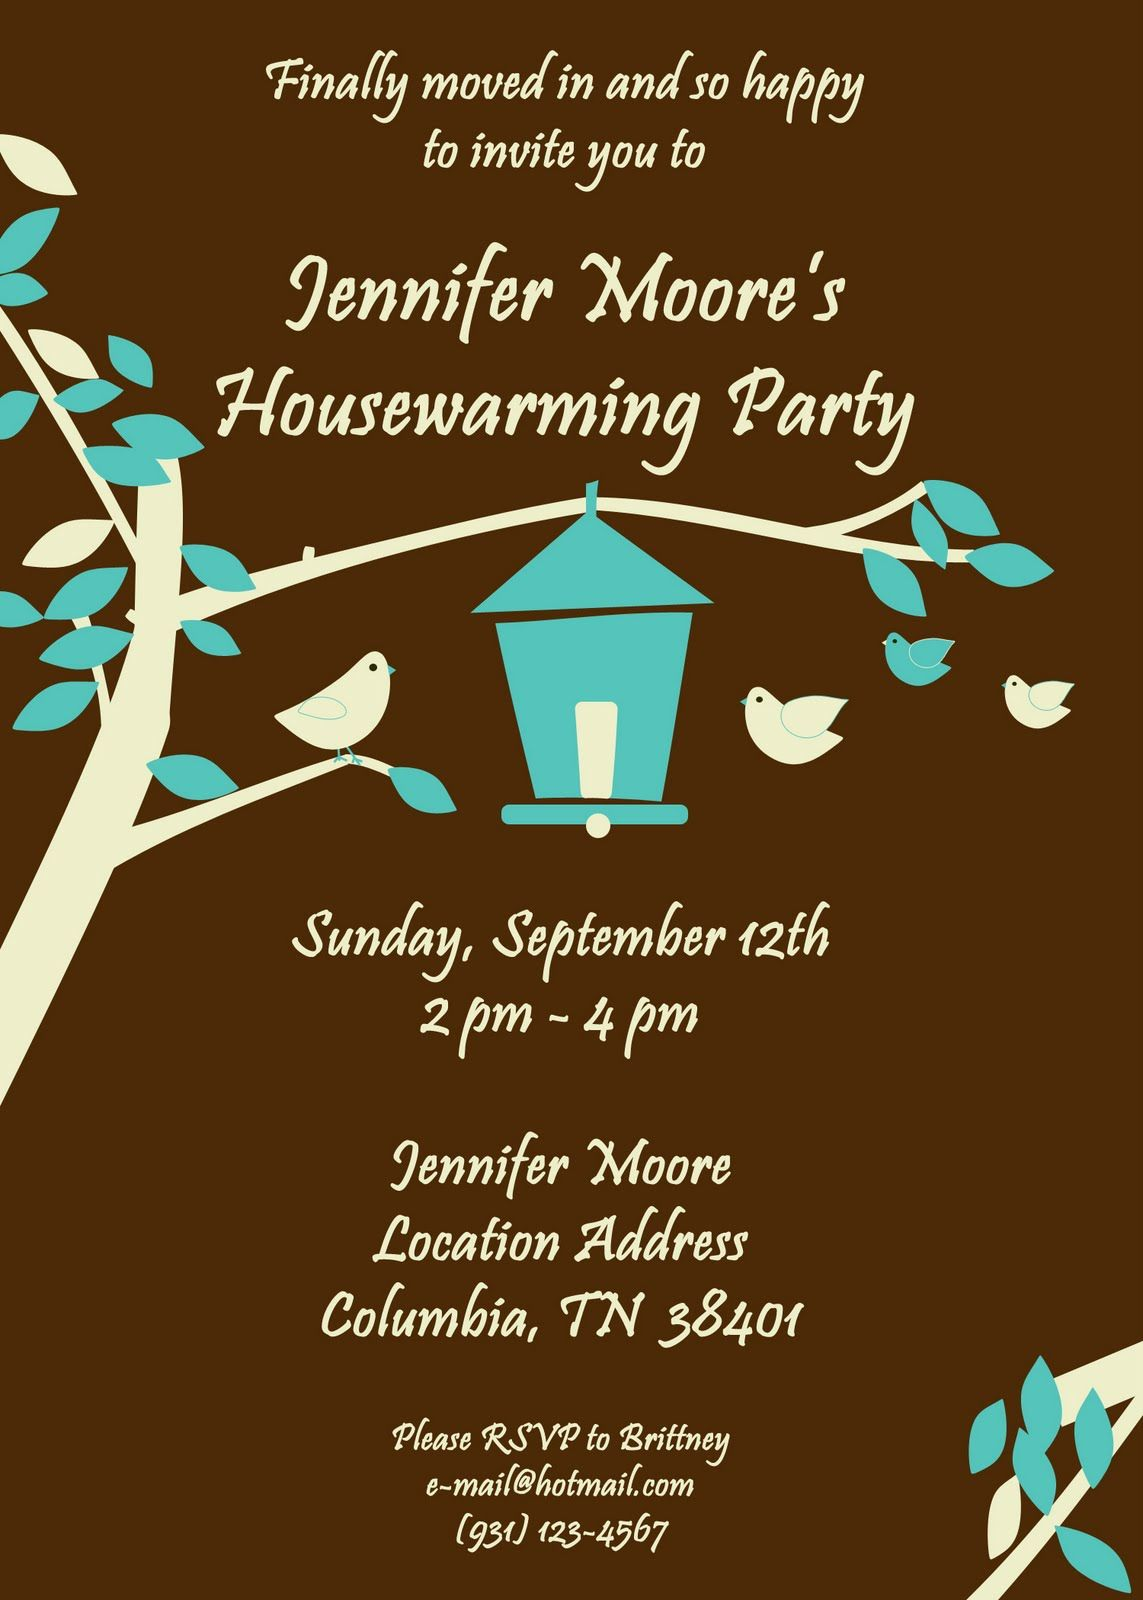 17 Best images about homemade invites on Pinterest | Homemade ...